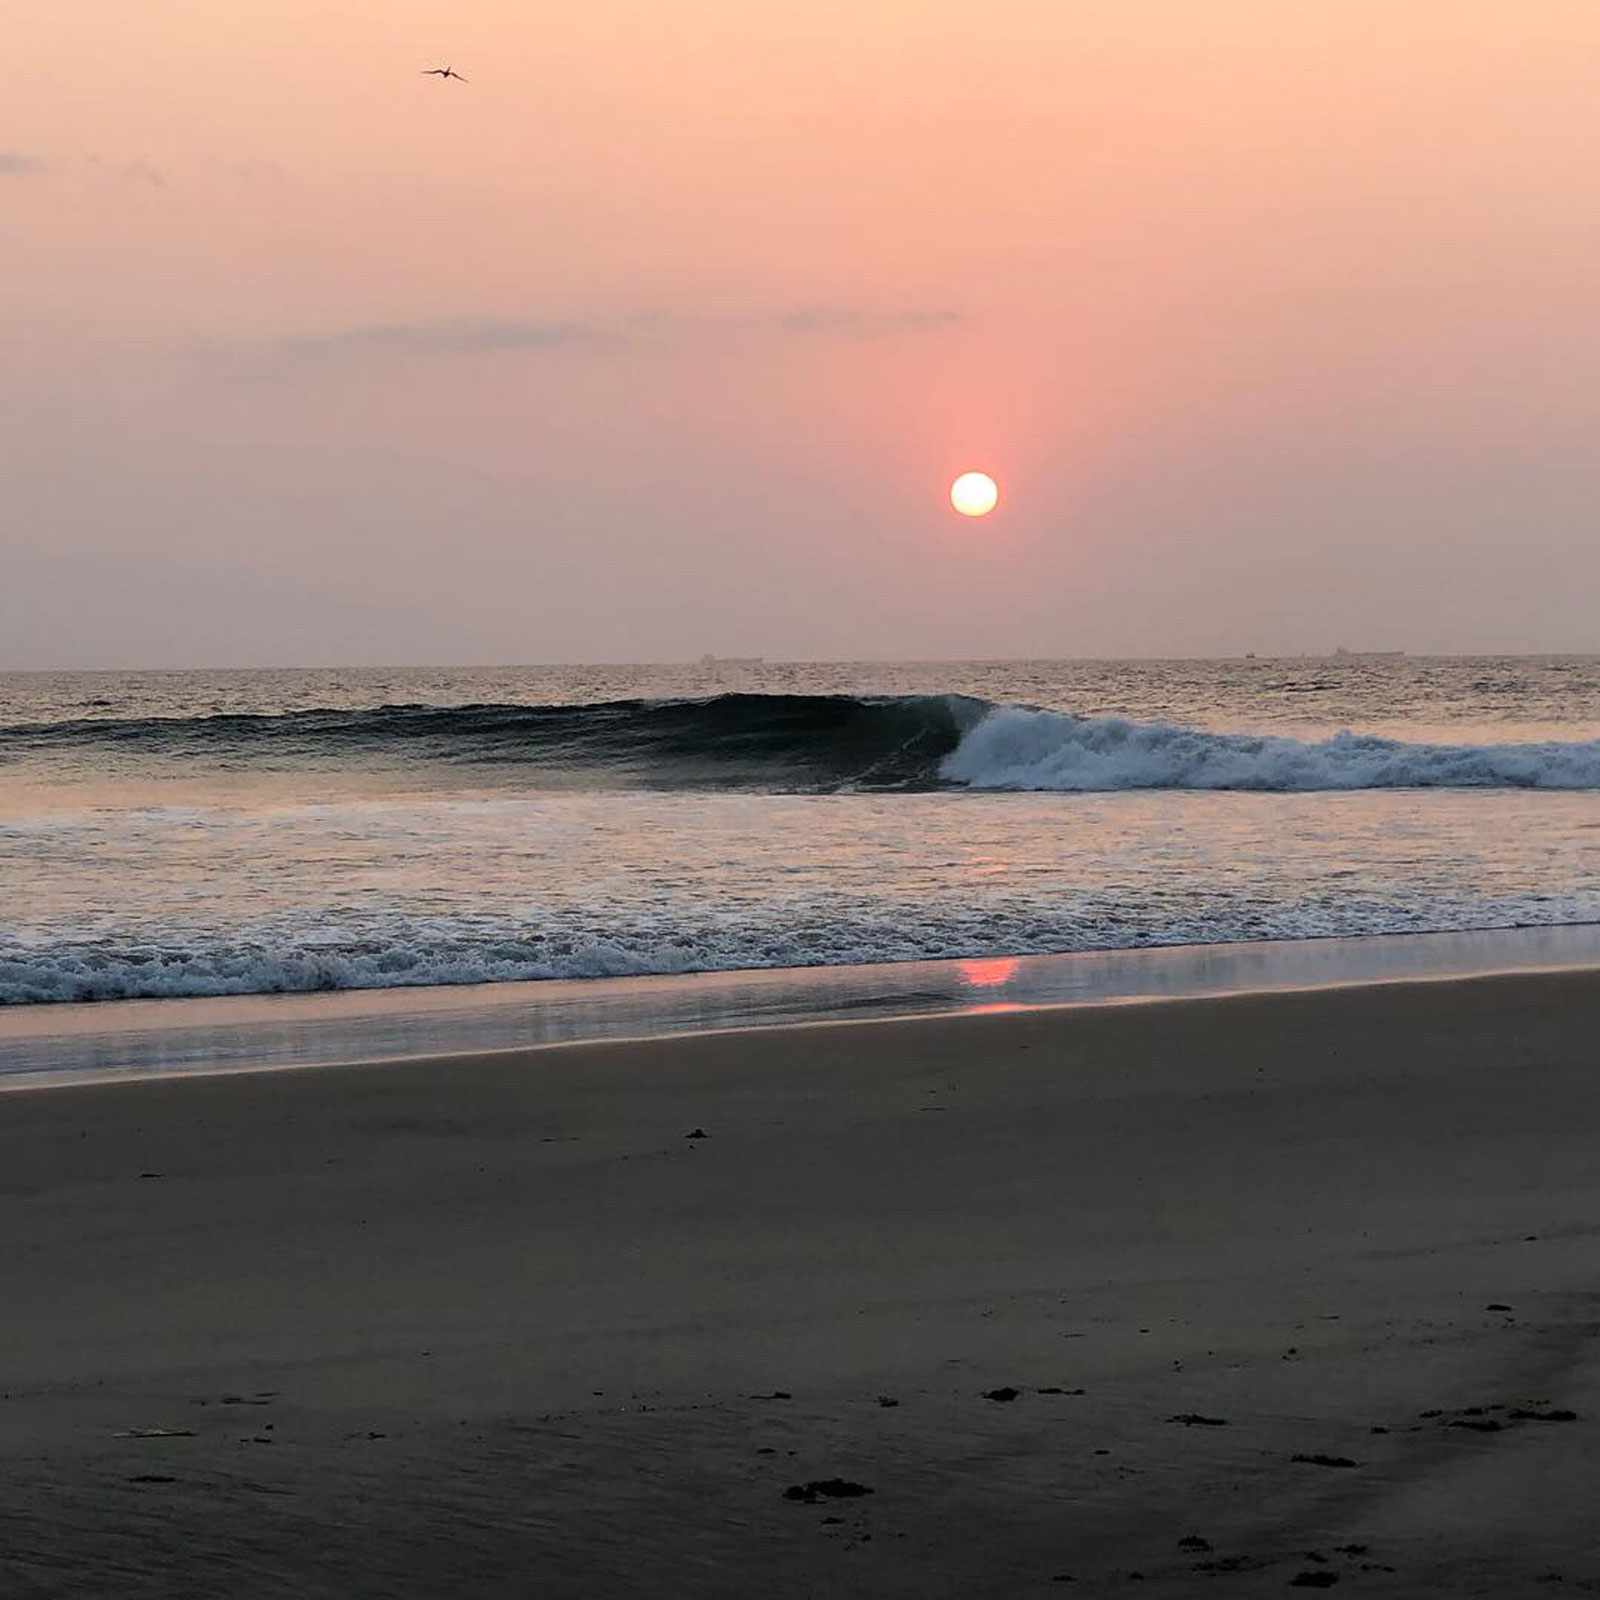 Las Palmeras Surf Camp, Salina Cruz, Oaxaca, Mexico, April 2019